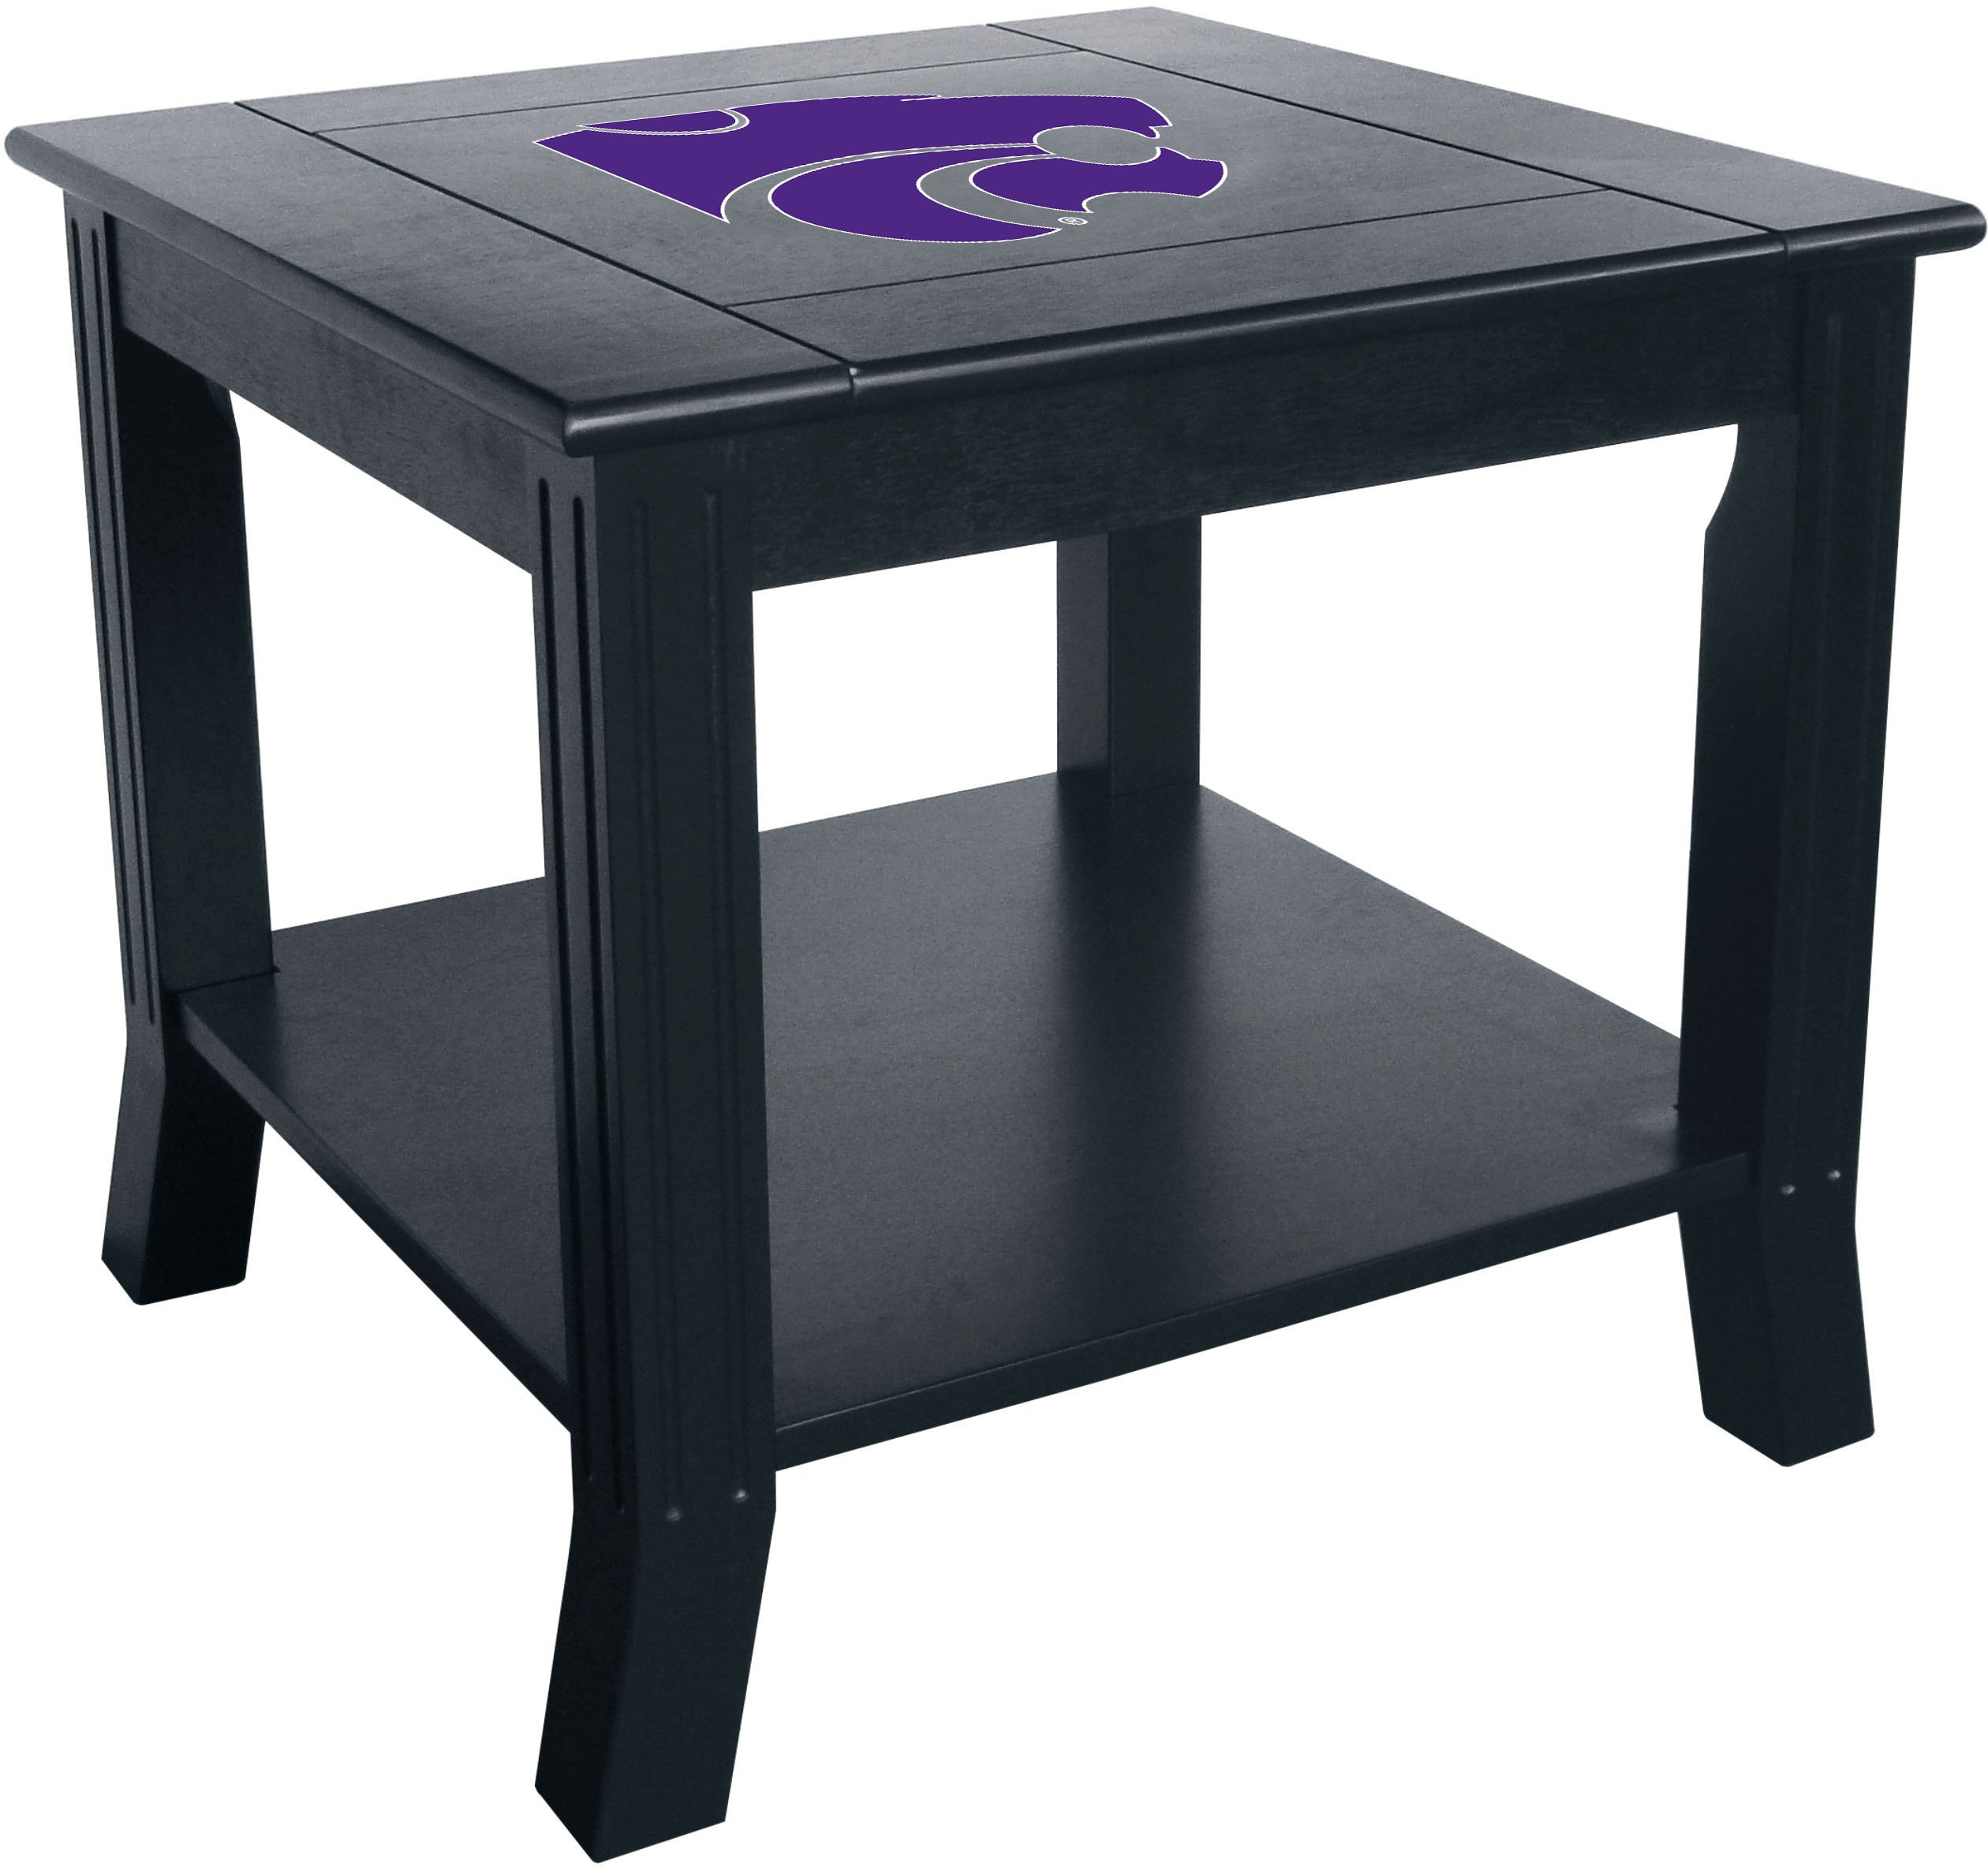 Imperial Officially Licensed NCAA Furniture: Hardwood Side/End Table, Kansas State Wildcats by Imperial